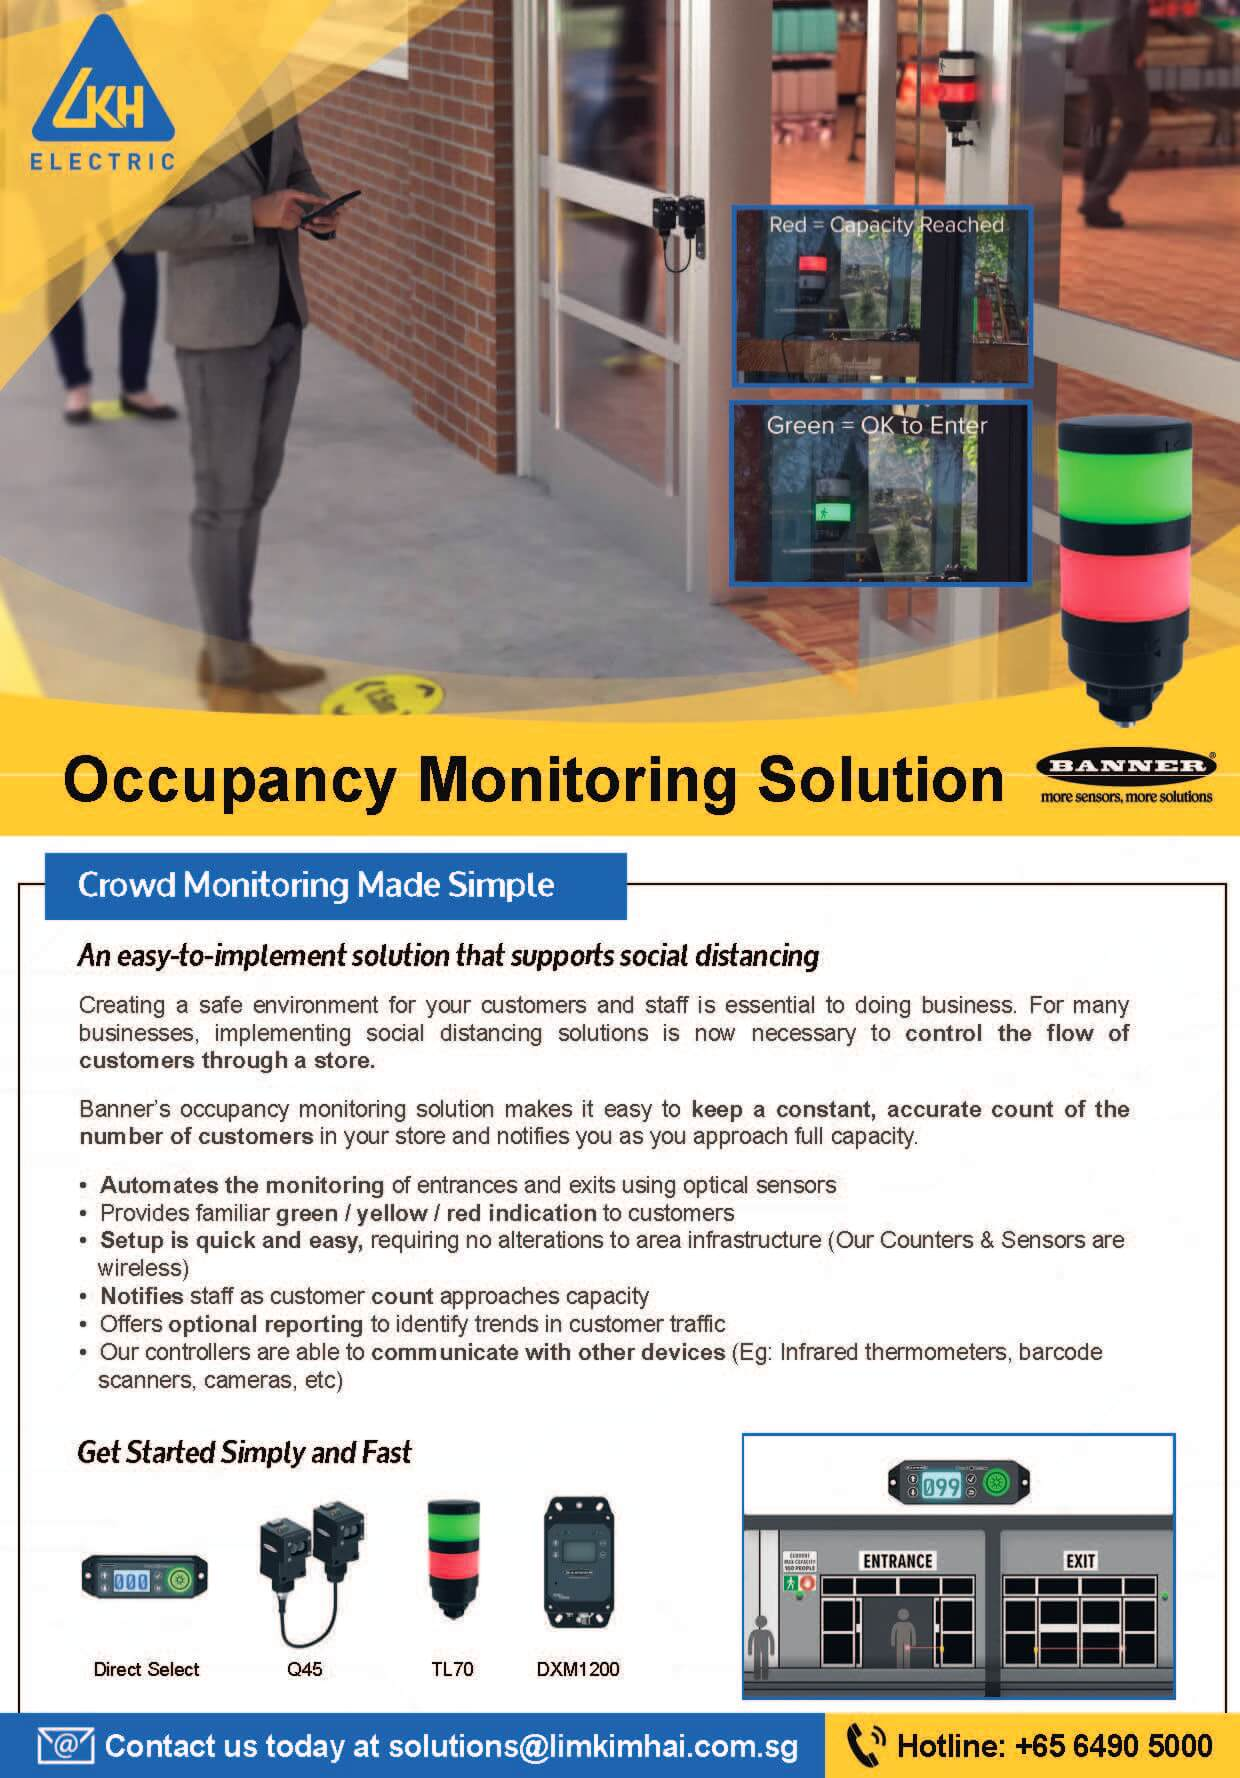 Occupancy Monitoring Solution Brochure